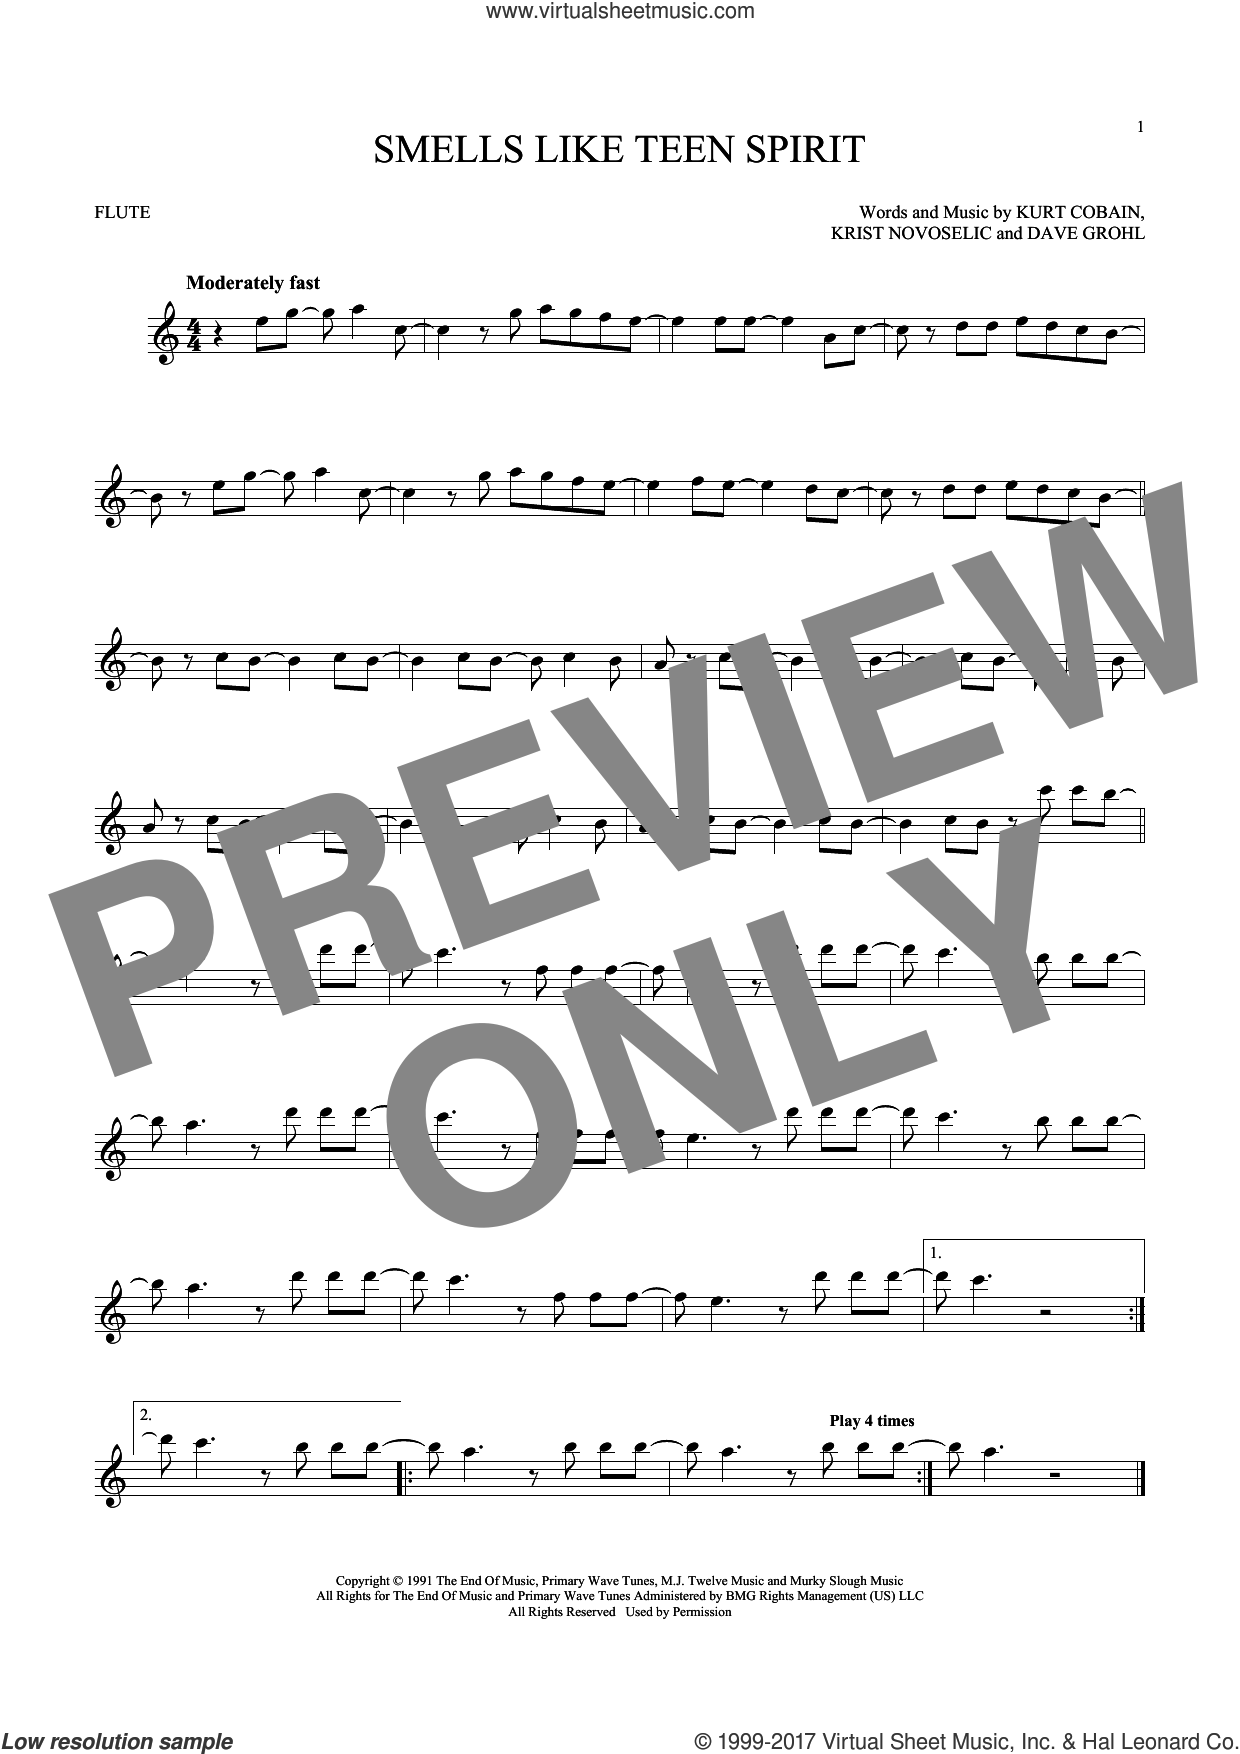 Smells Like Teen Spirit sheet music for flute solo by Nirvana, Dave Grohl, Krist Novoselic and Kurt Cobain, intermediate skill level